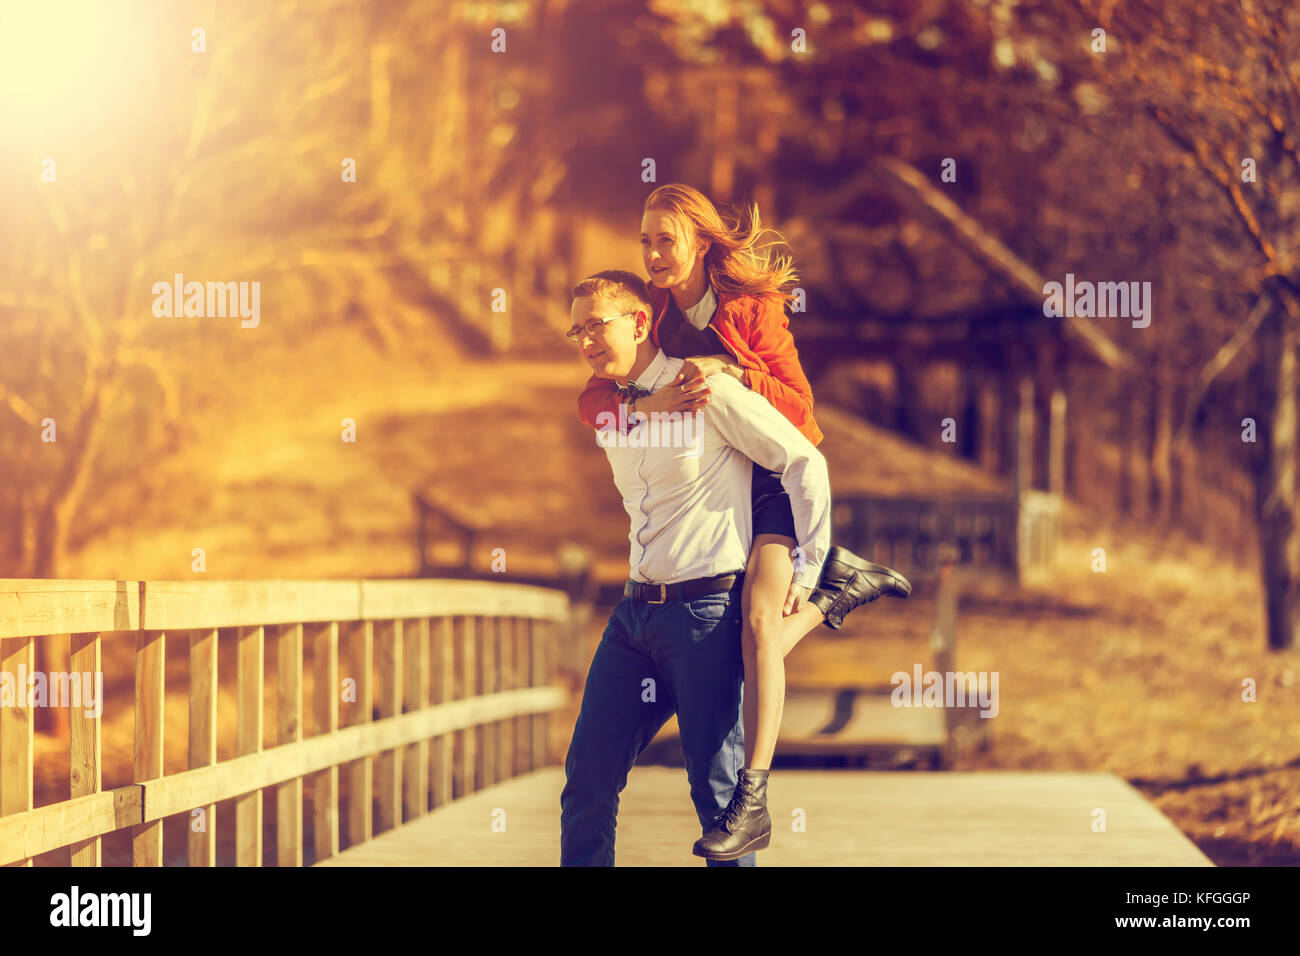 Happy man carrying his girlfriend on the back on on the bridge over the river. Vintage tone - Stock Image